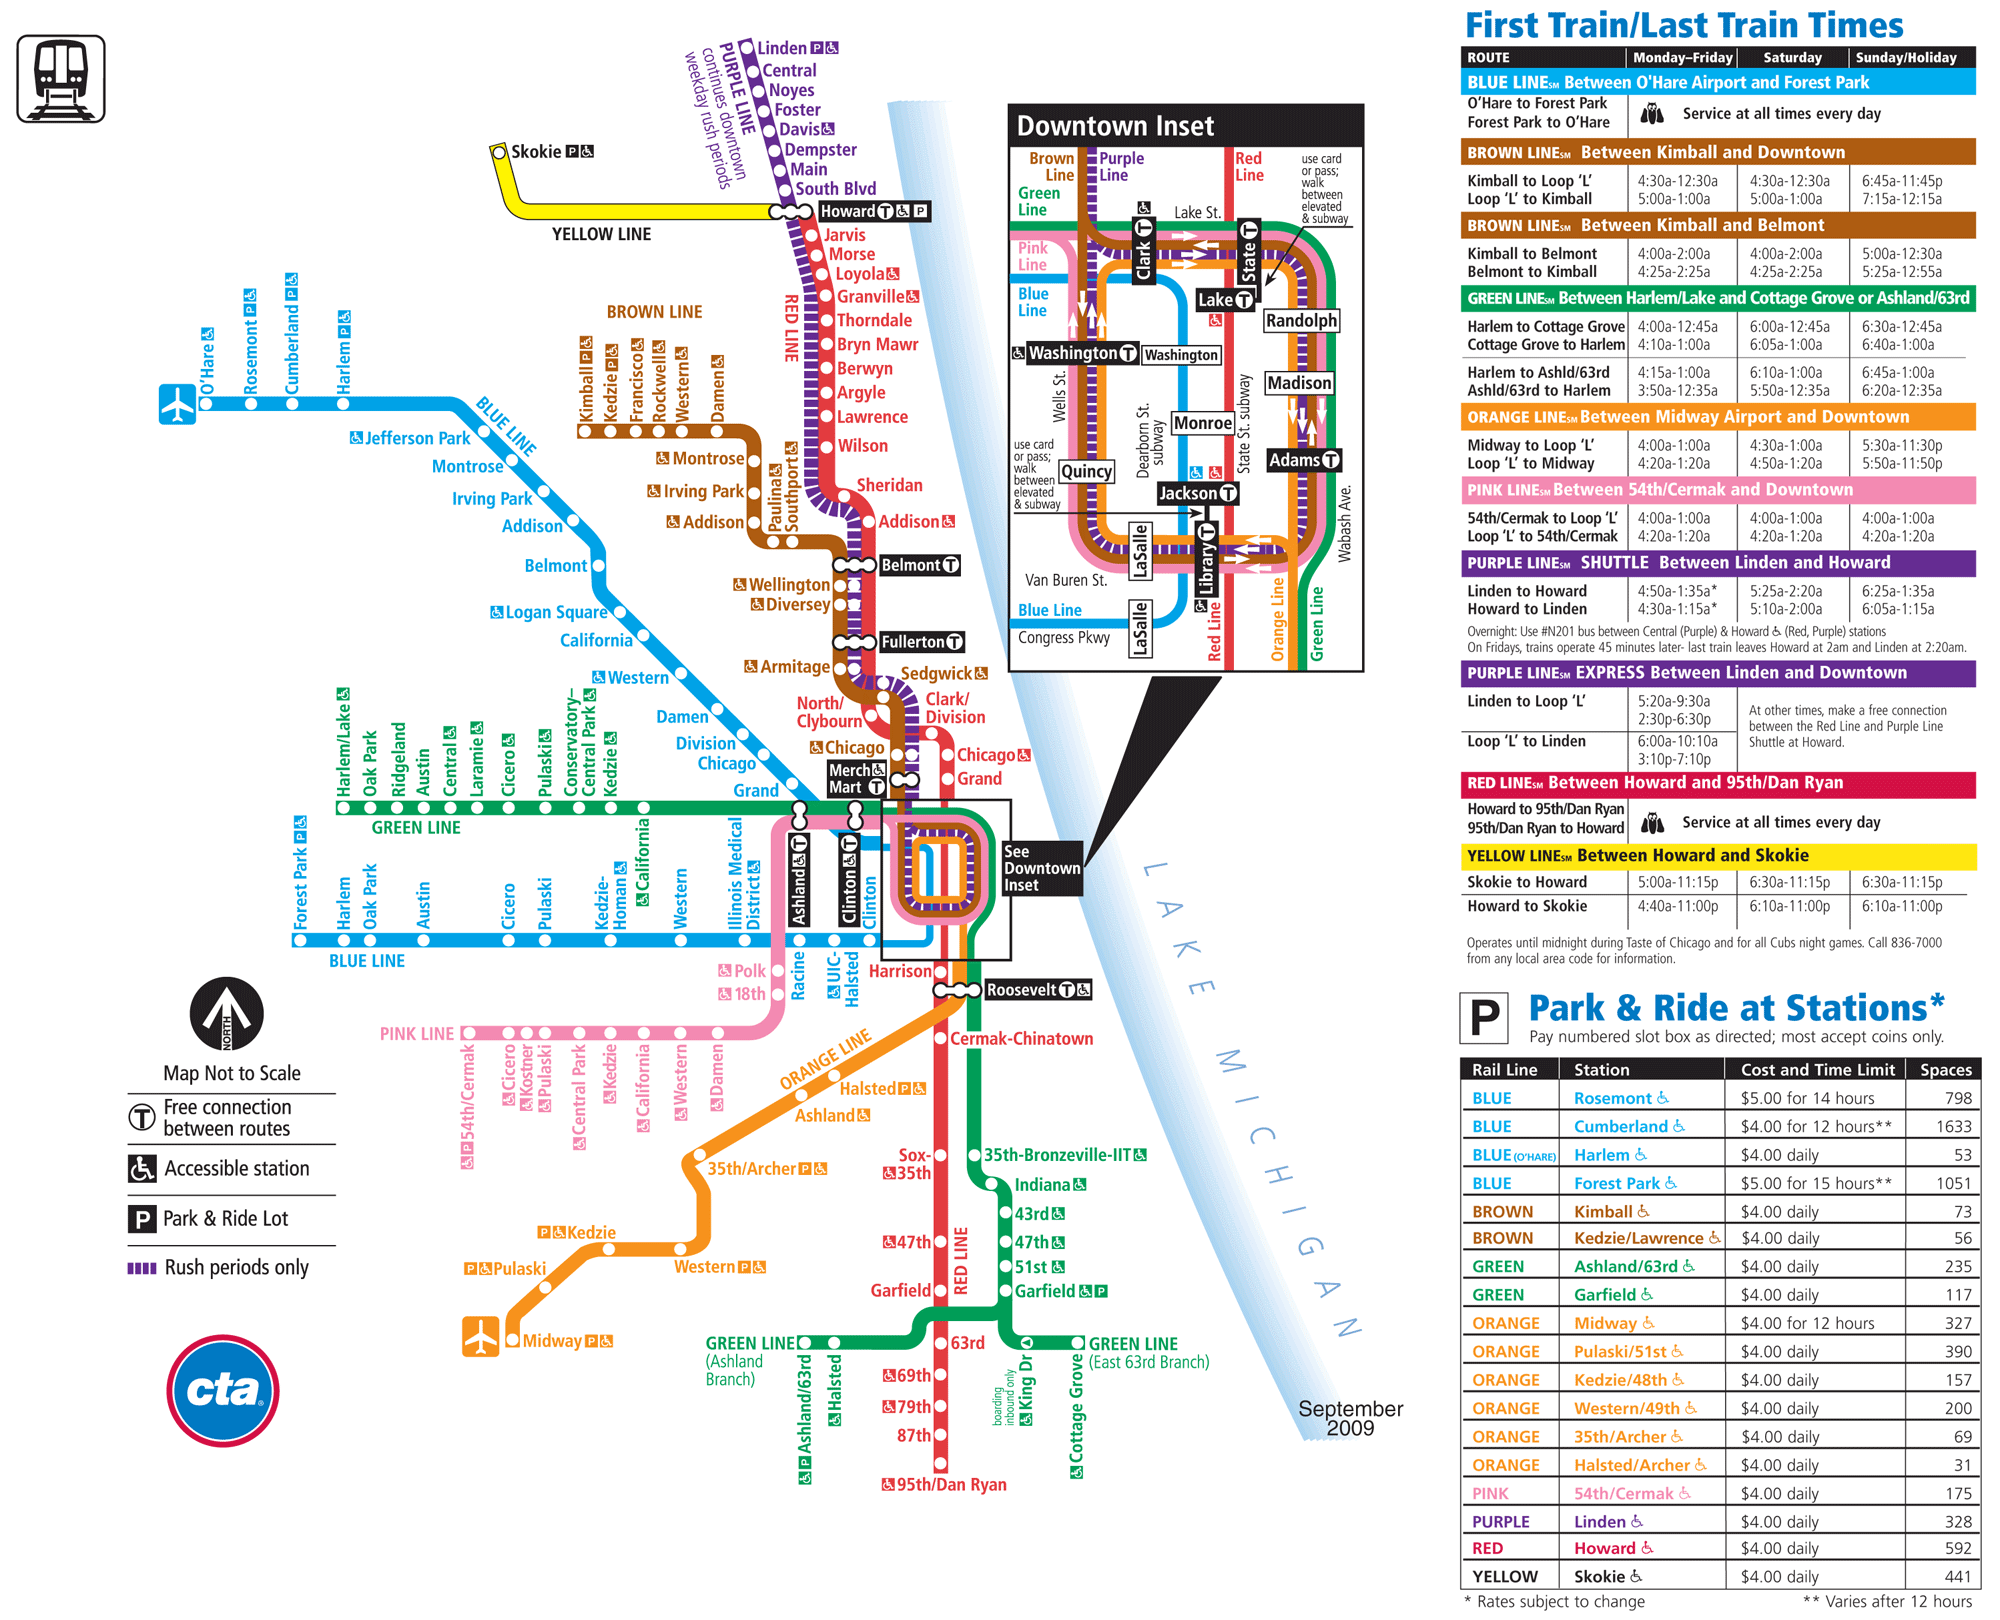 chicago metro system map • mapsofnet - click on the chicago metro system map